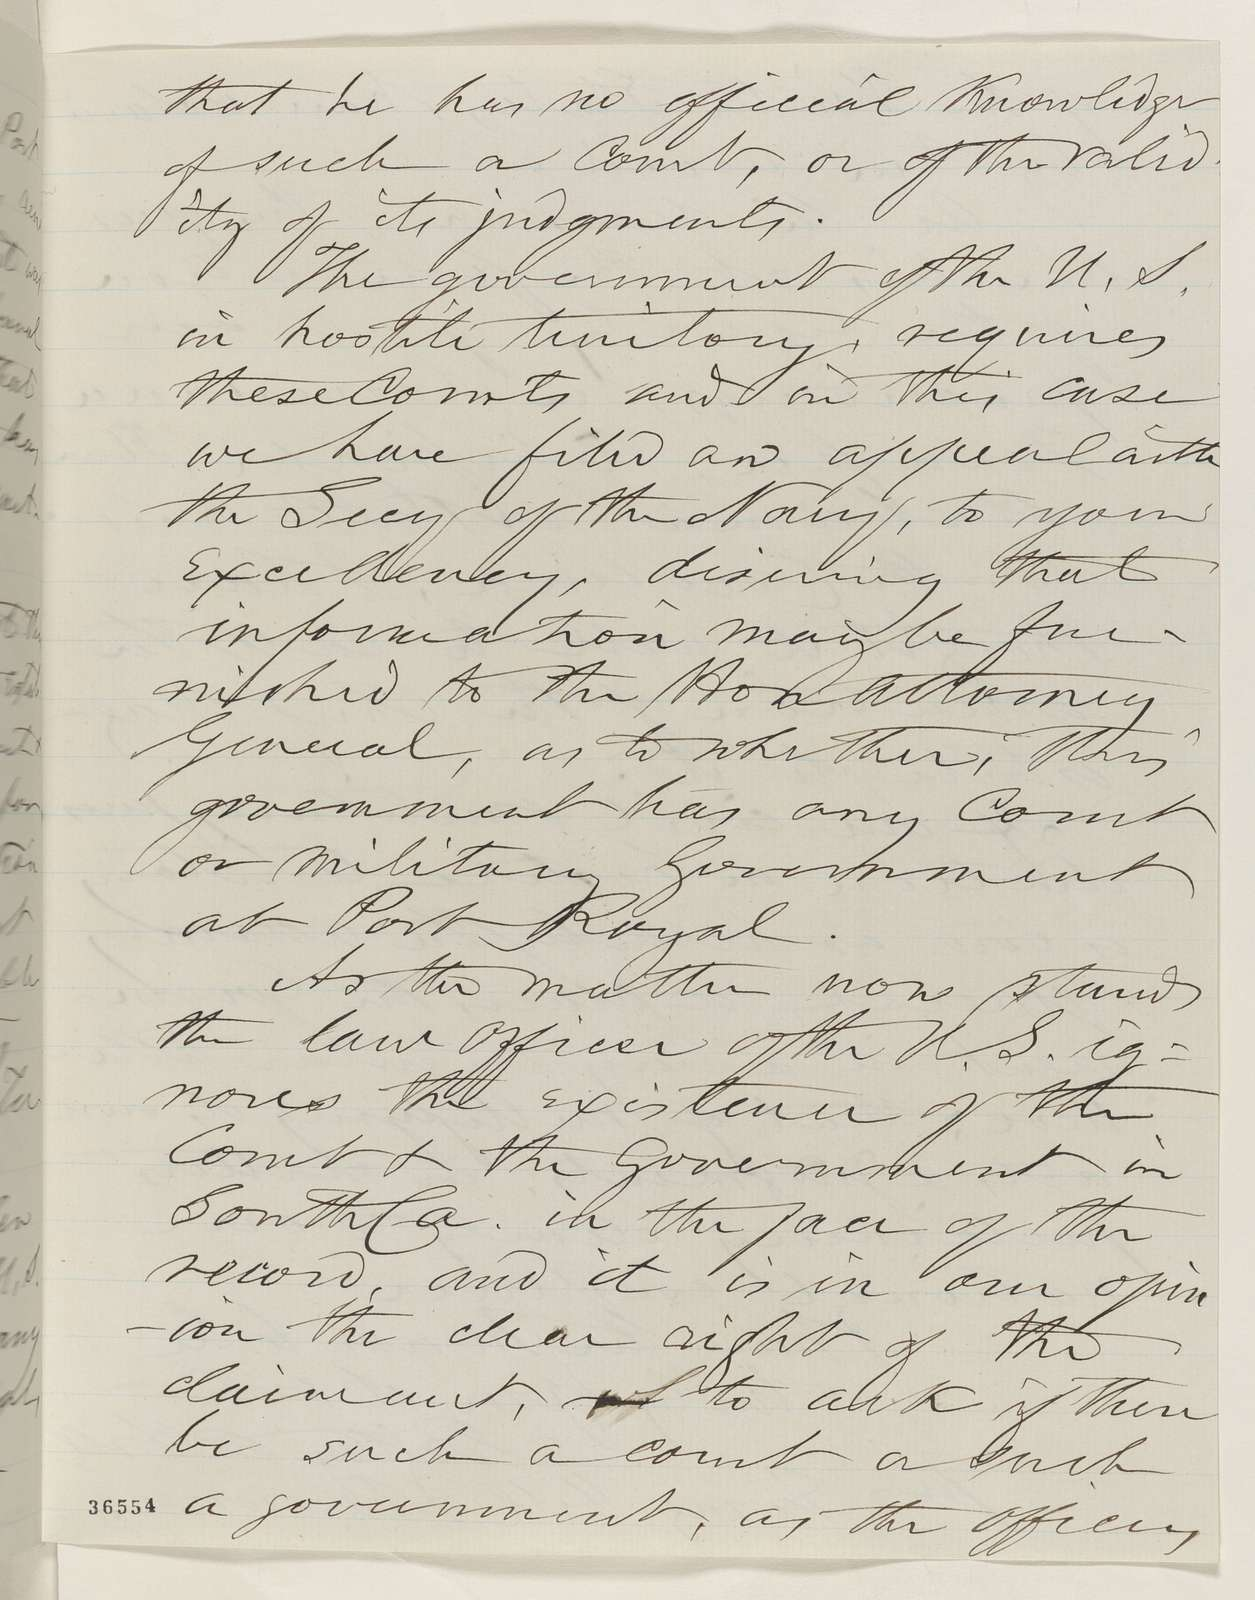 Abraham Lincoln papers: Series 1. General Correspondence. 1833-1916: Britton A. Hill to Abraham Lincoln, Thursday, September 22, 1864 (Payment of judgment rendered by court at Port Royal, South Carolina)